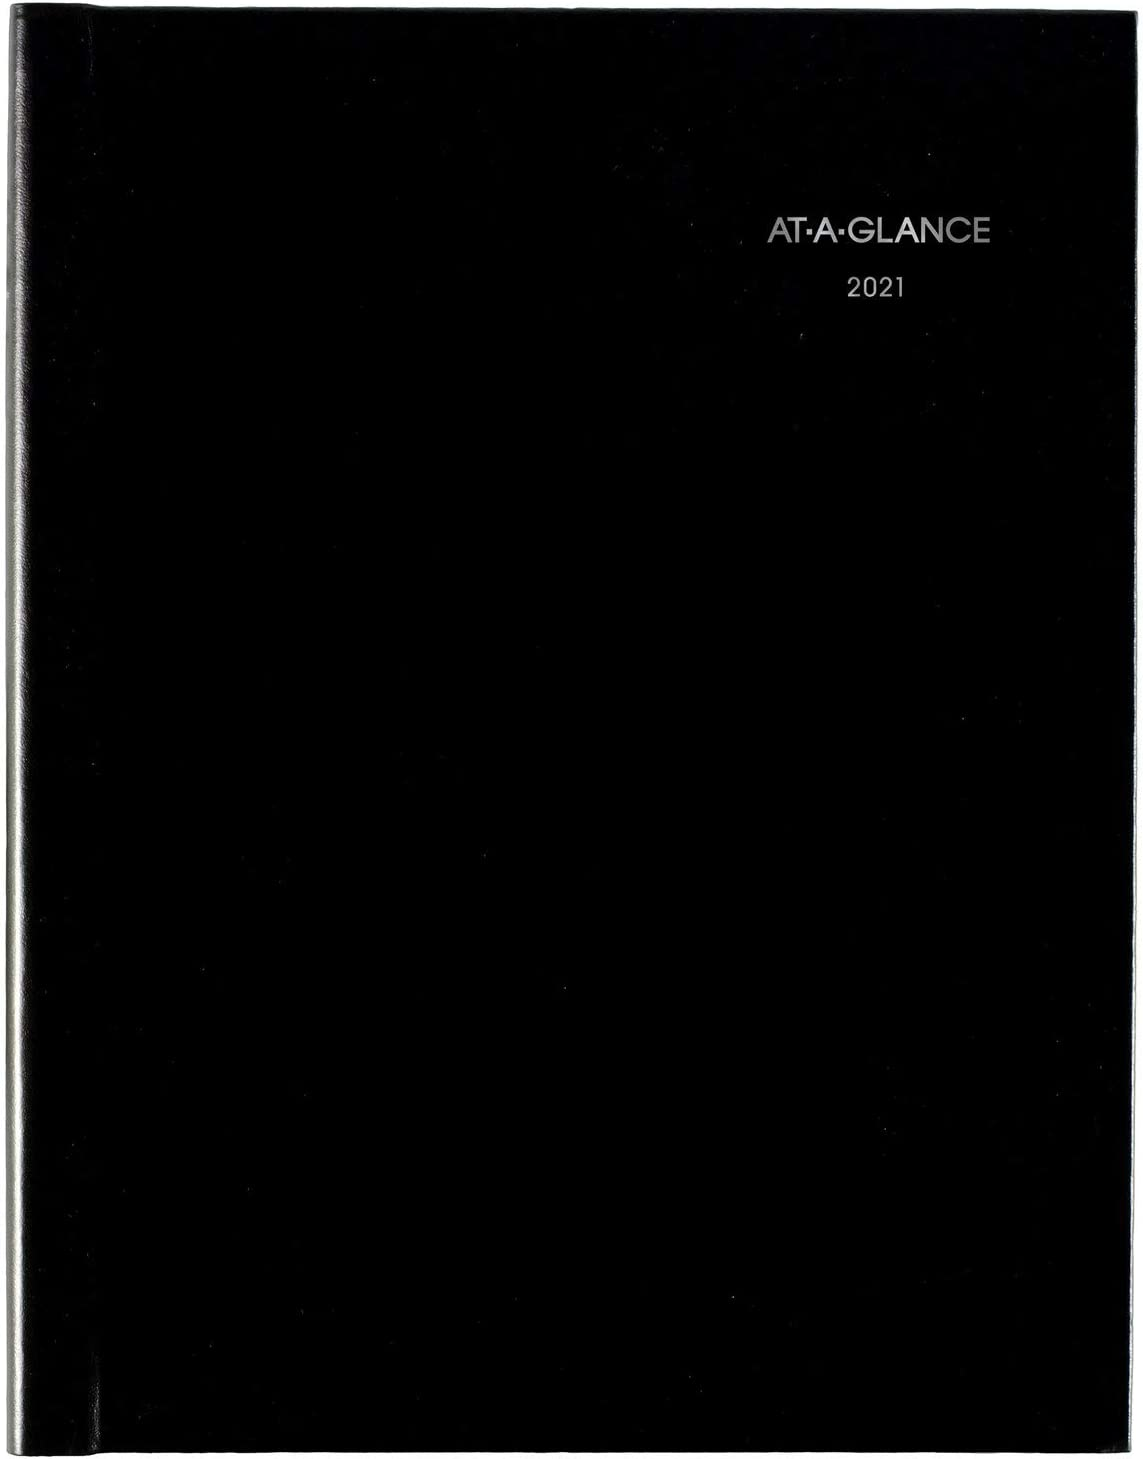 2021 Weekly Appointment Book & Planner by AT-A-GLANCE, 8